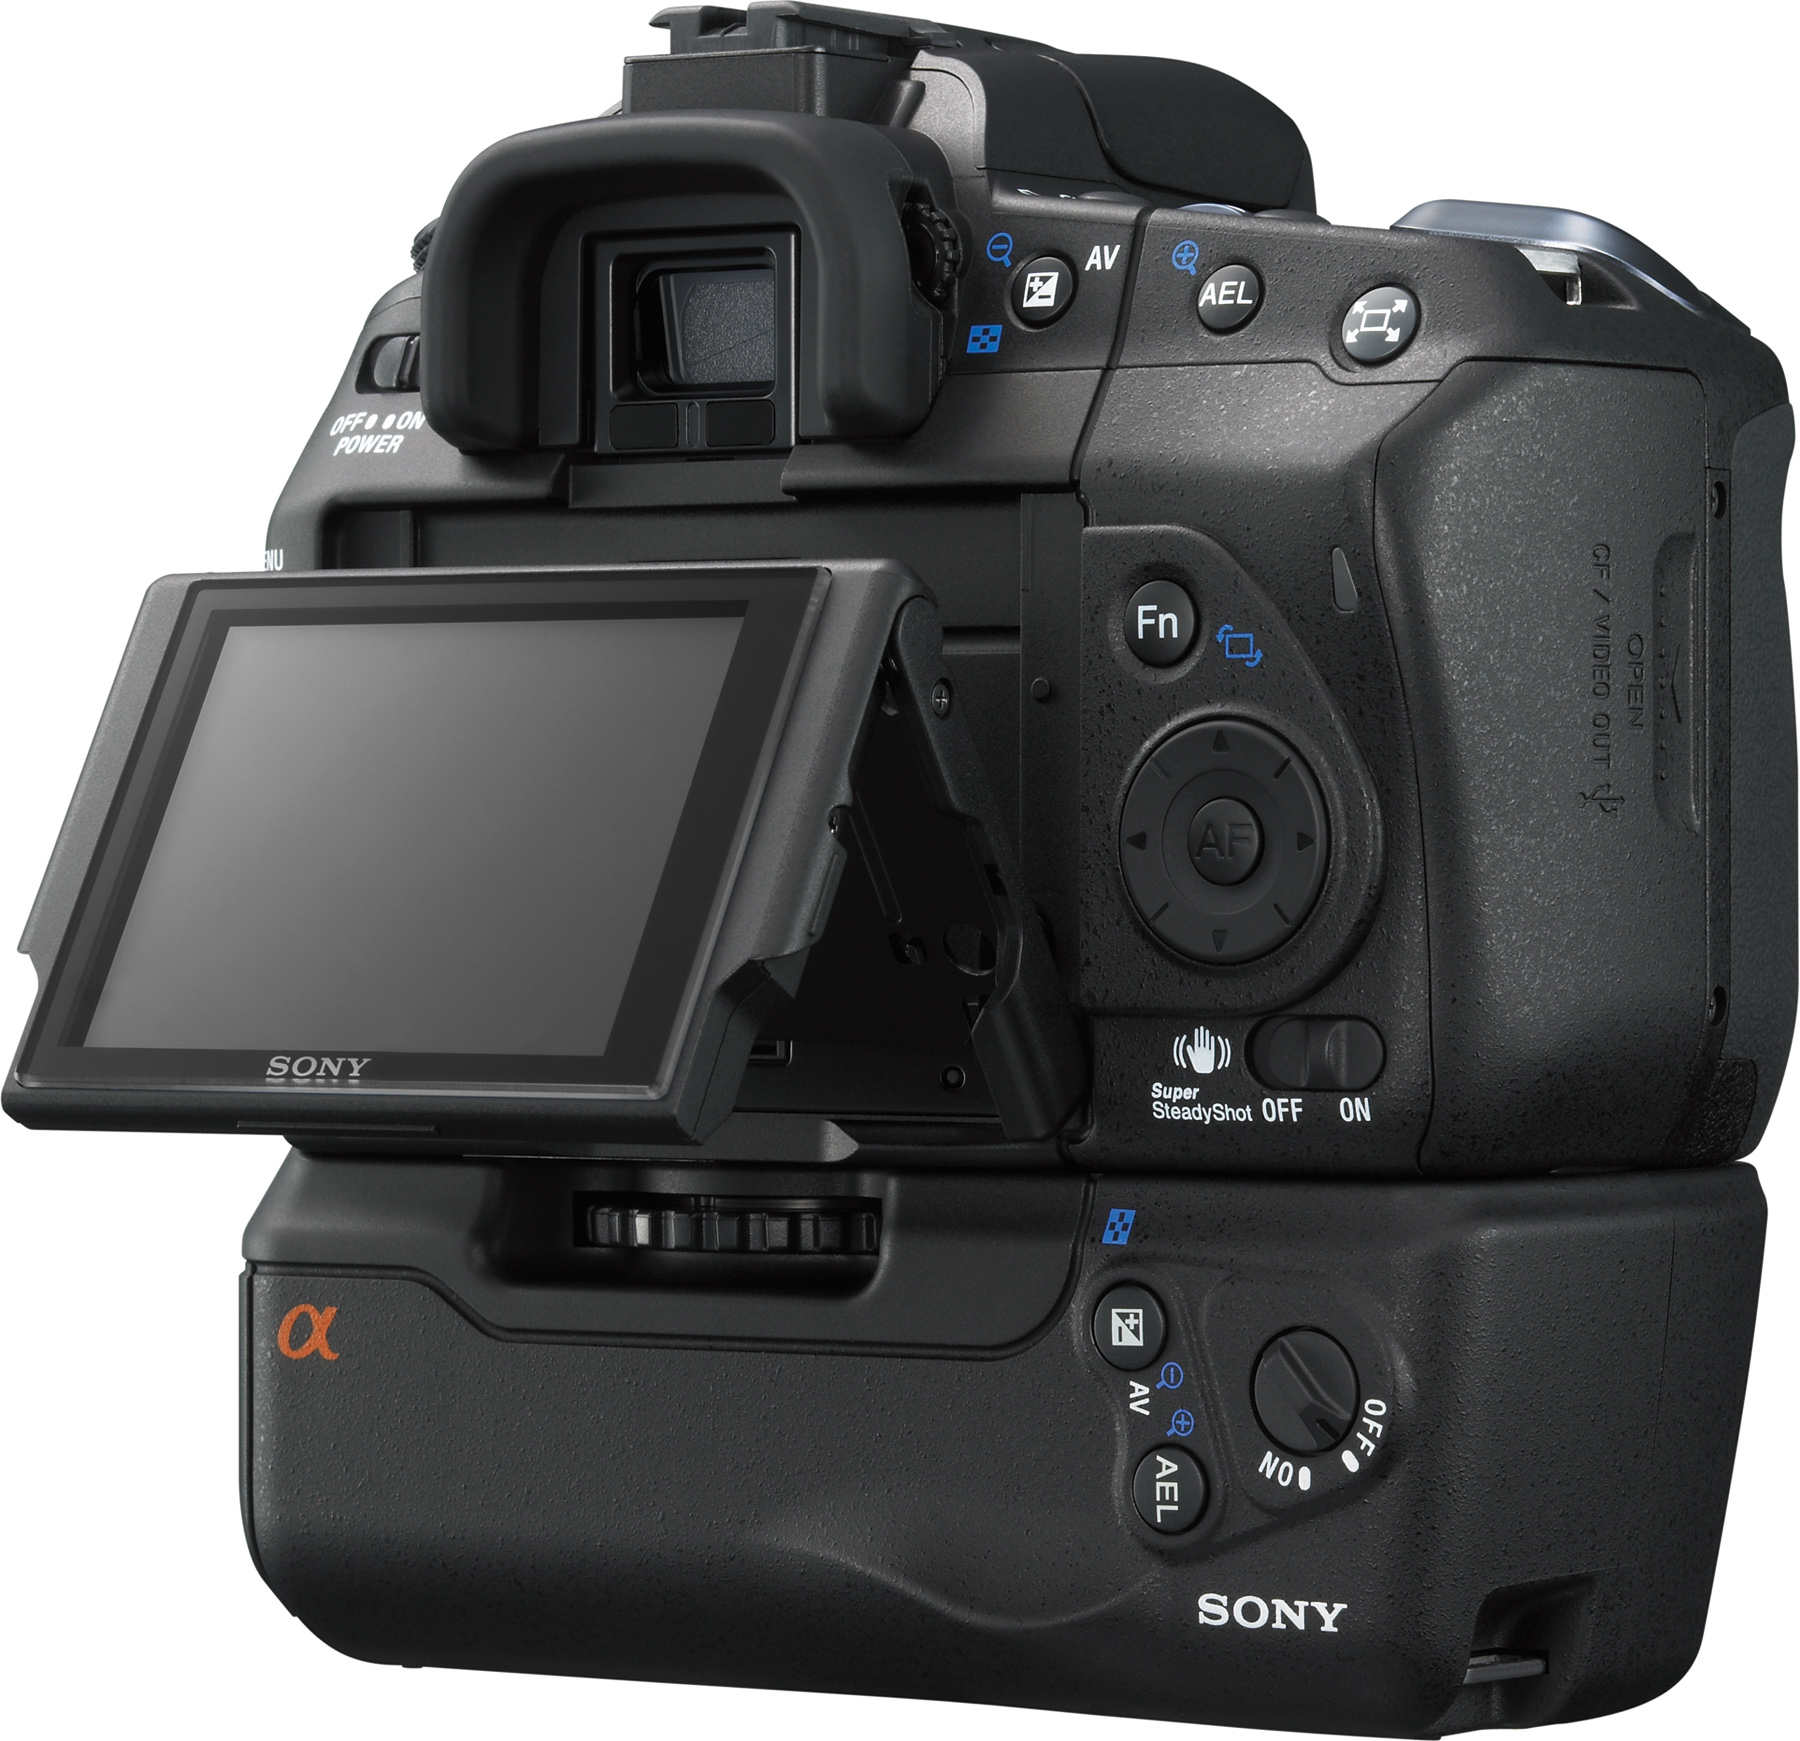 Sony Alpha DSLR-A350 with optional battery grip